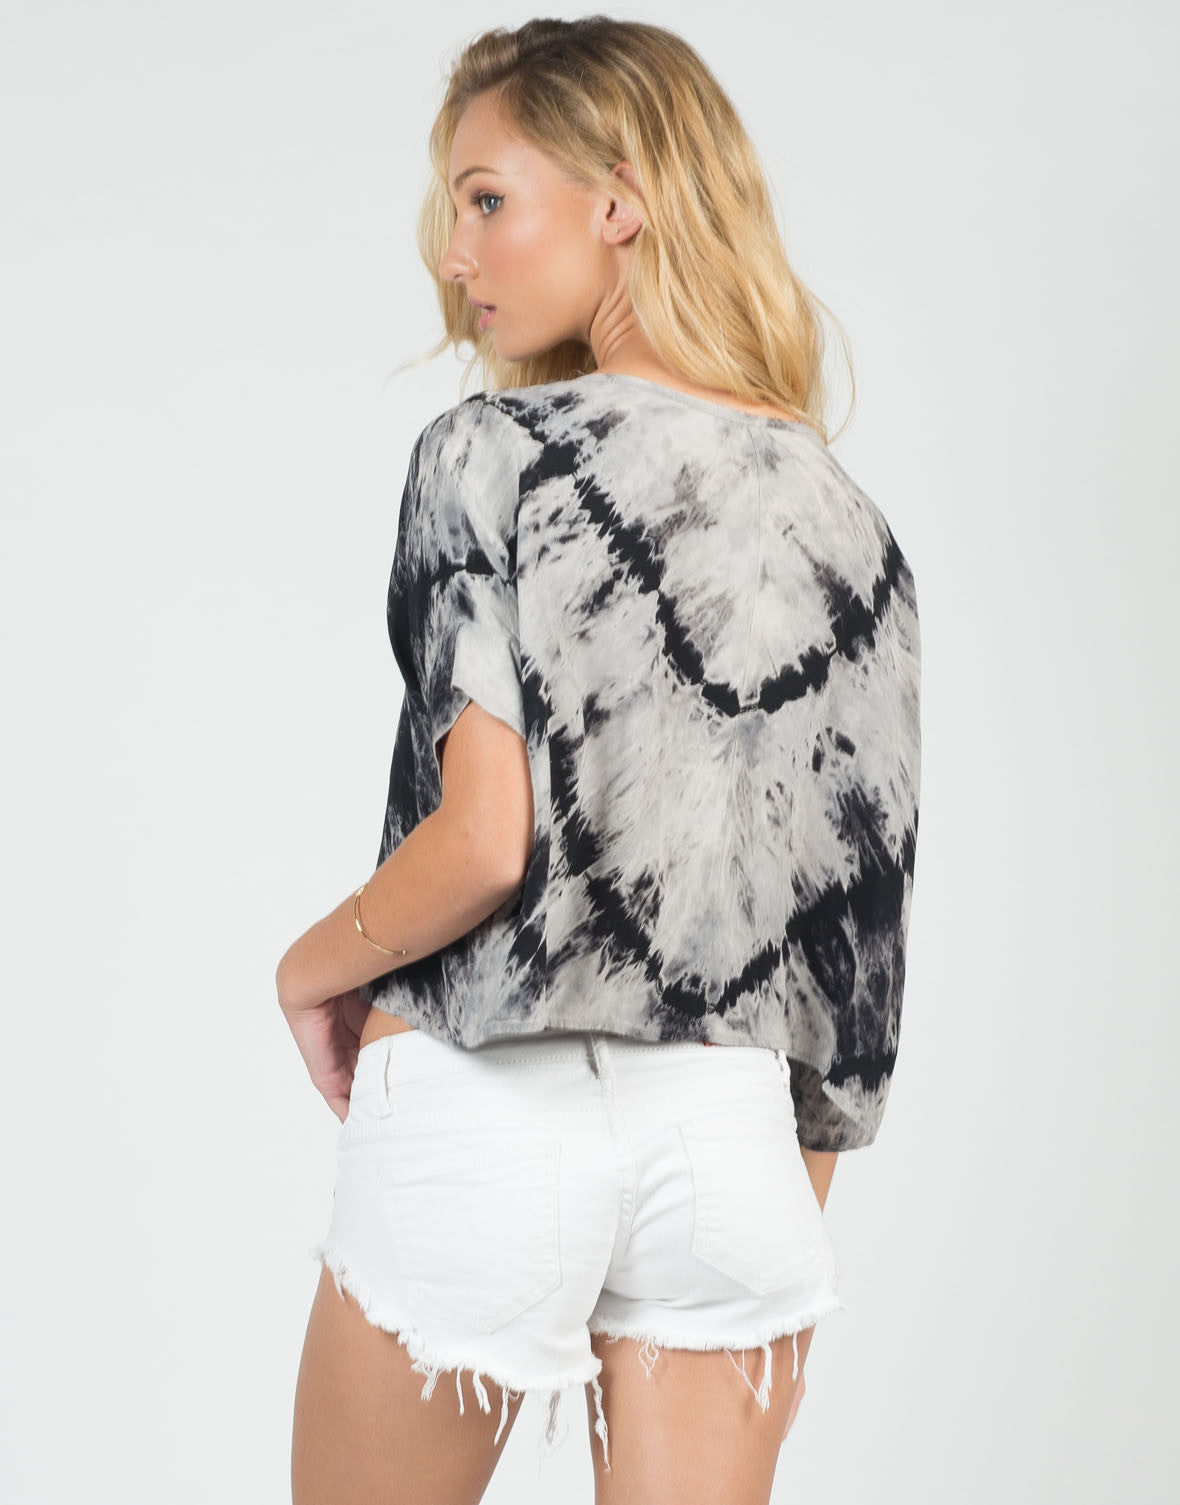 Back View of Boxy Tie-Dye Tee